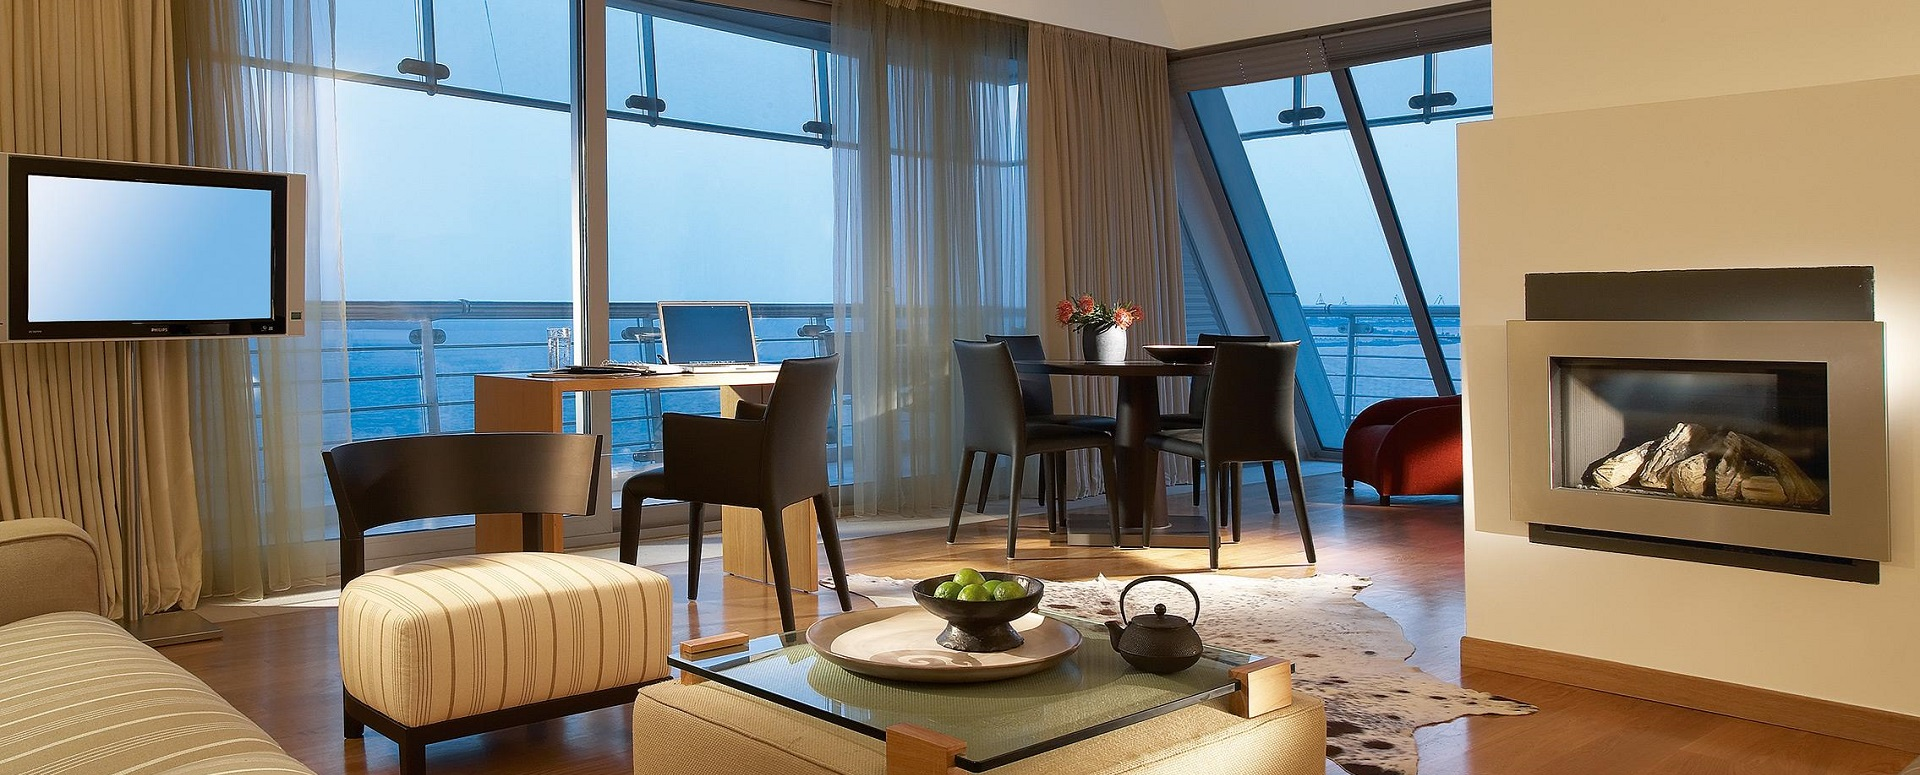 Which are the best hotels in Thessaloniki?